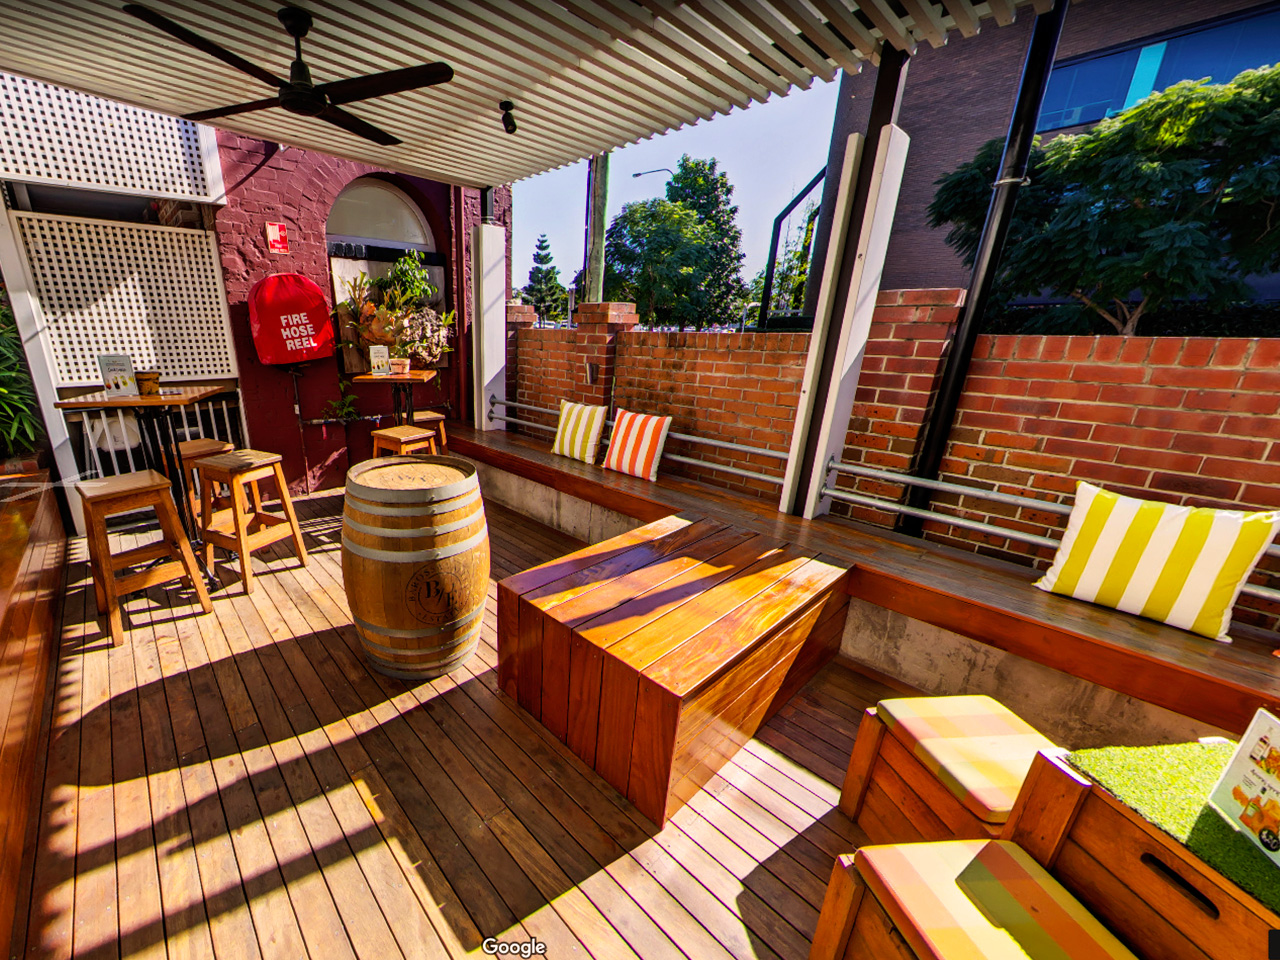 Wooden Chairs And Tables With Wine Cask, A Long Chair On The Side And Stripe Pillows In The Garden Function Space